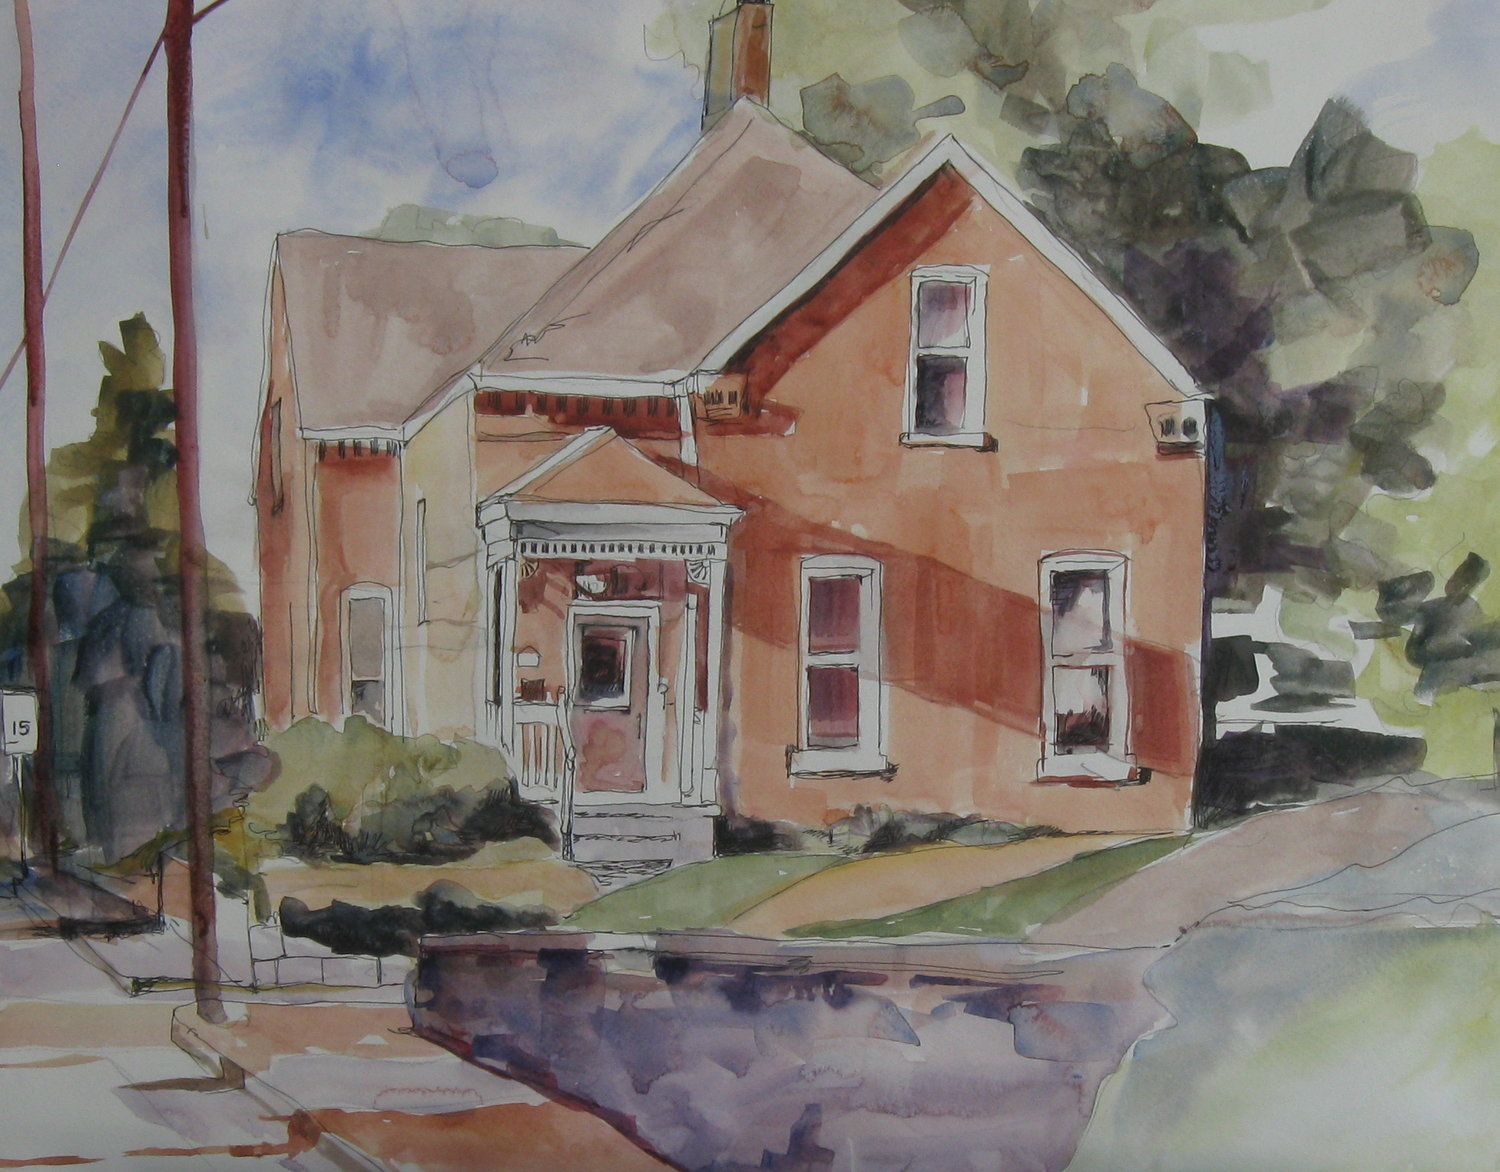 Water Color of a St. Charles MO home